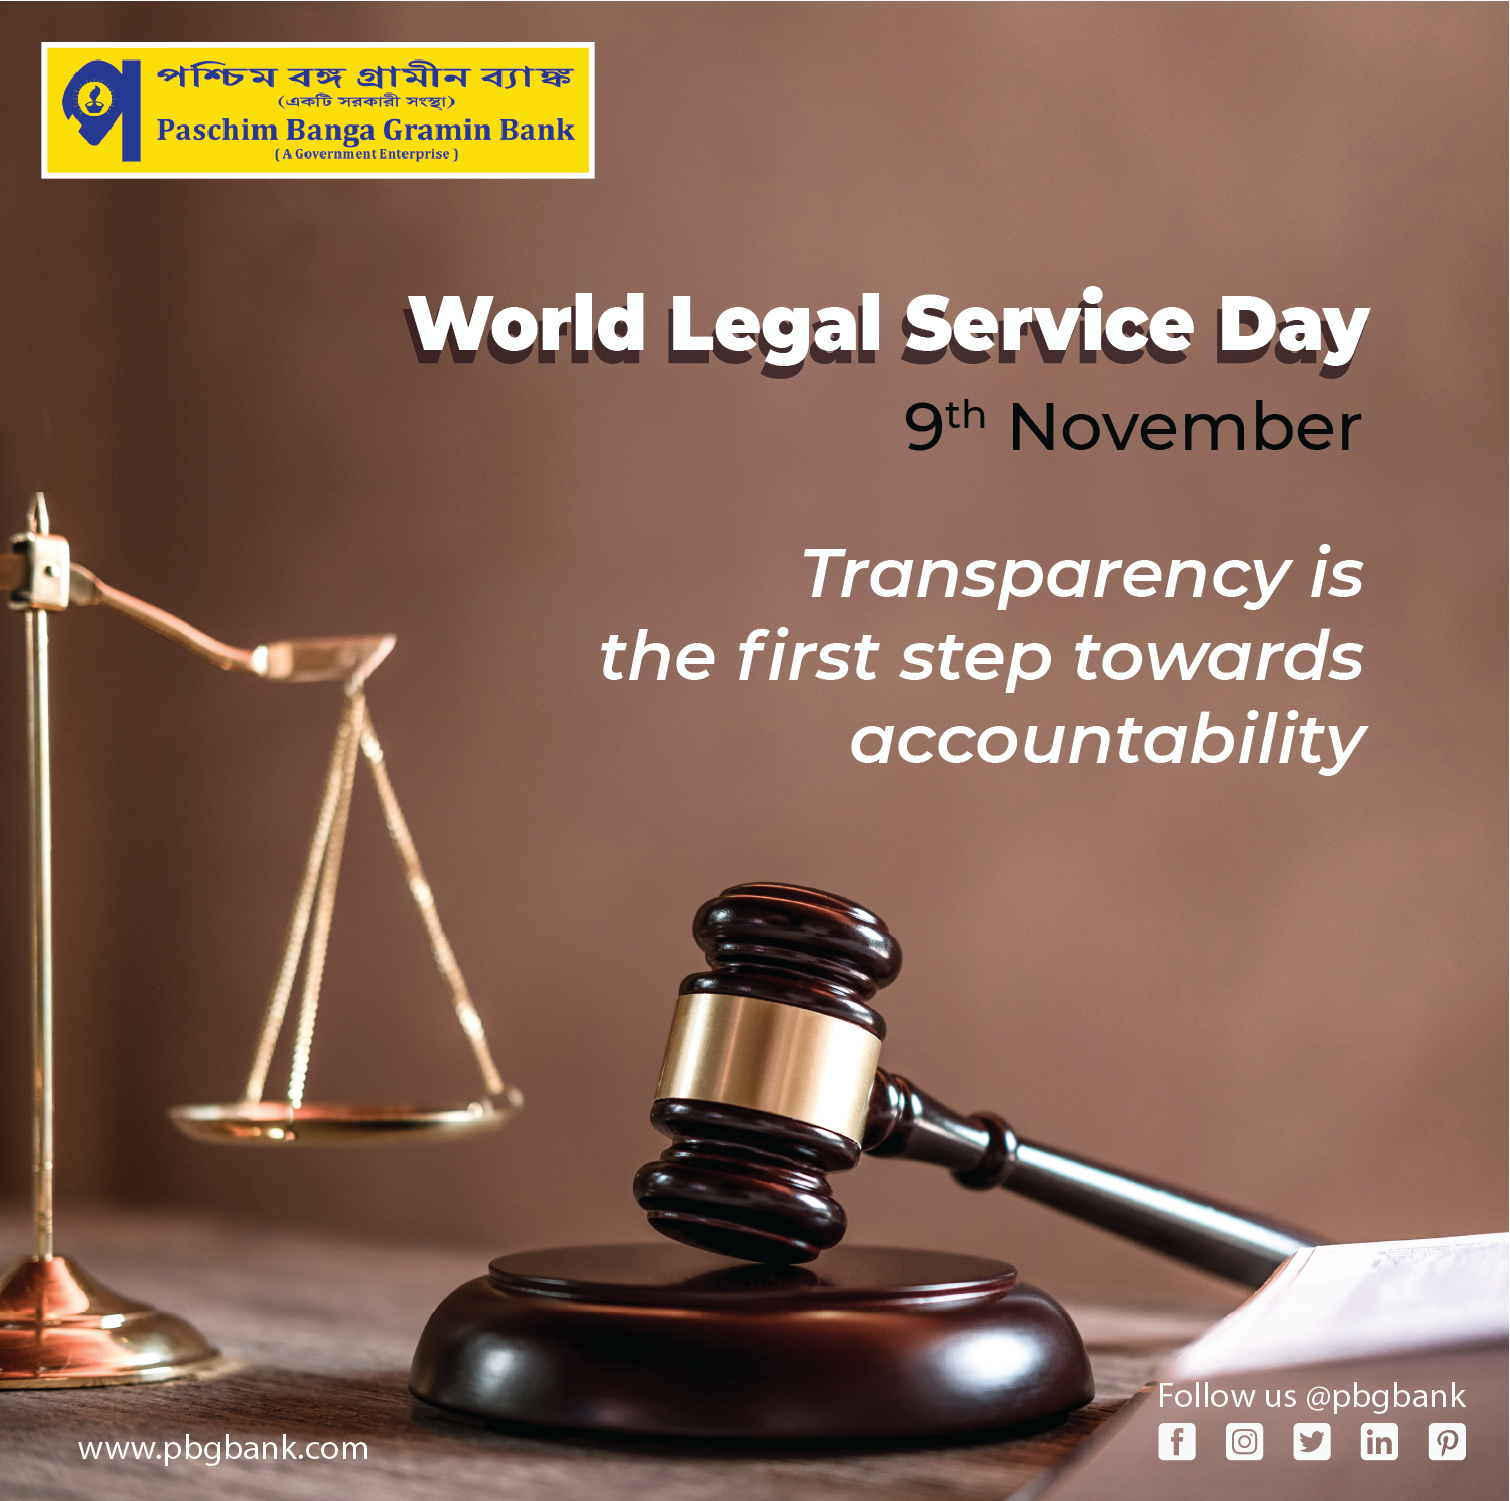 World Legal Service Day Legal Services Day Service